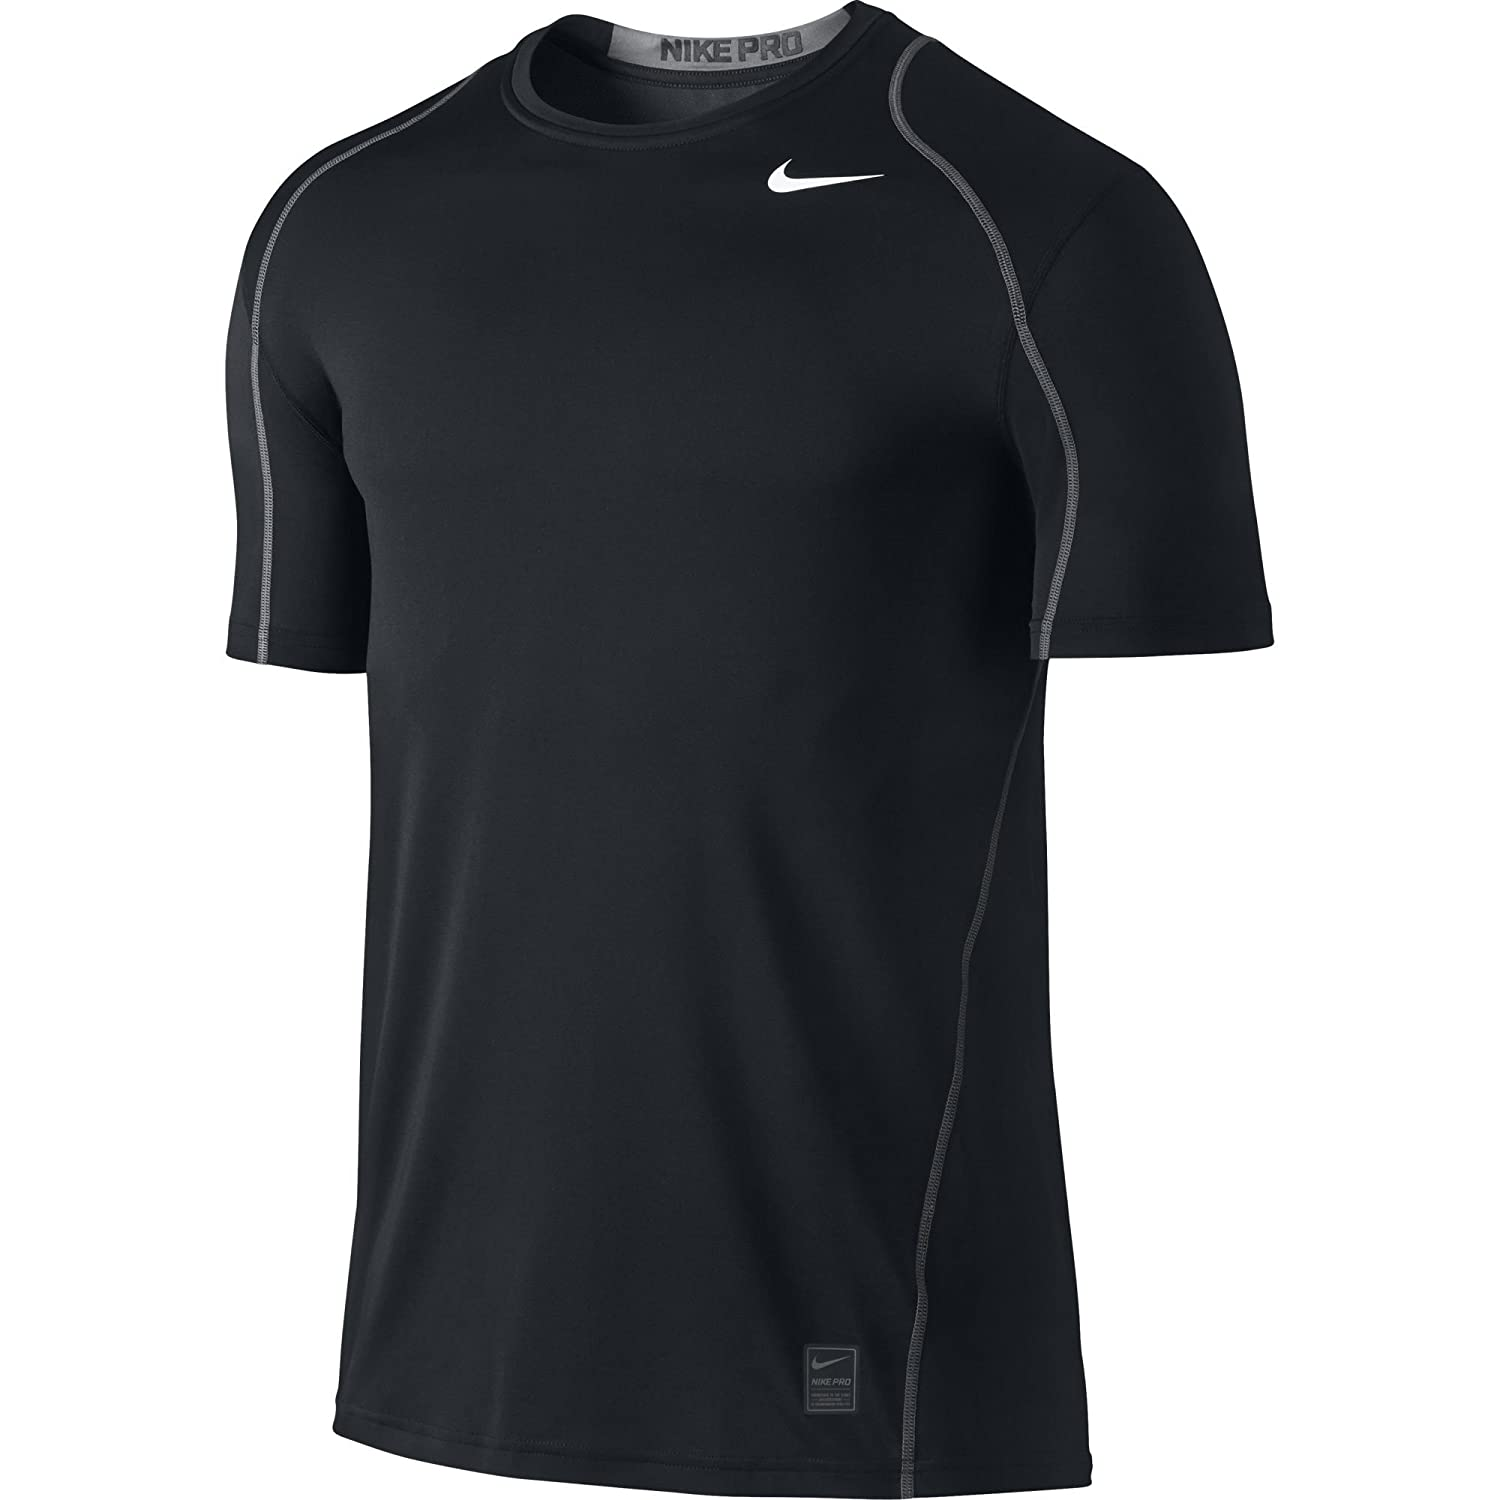 NIKE Men's Pro Fitted Short Sleeve Shirt